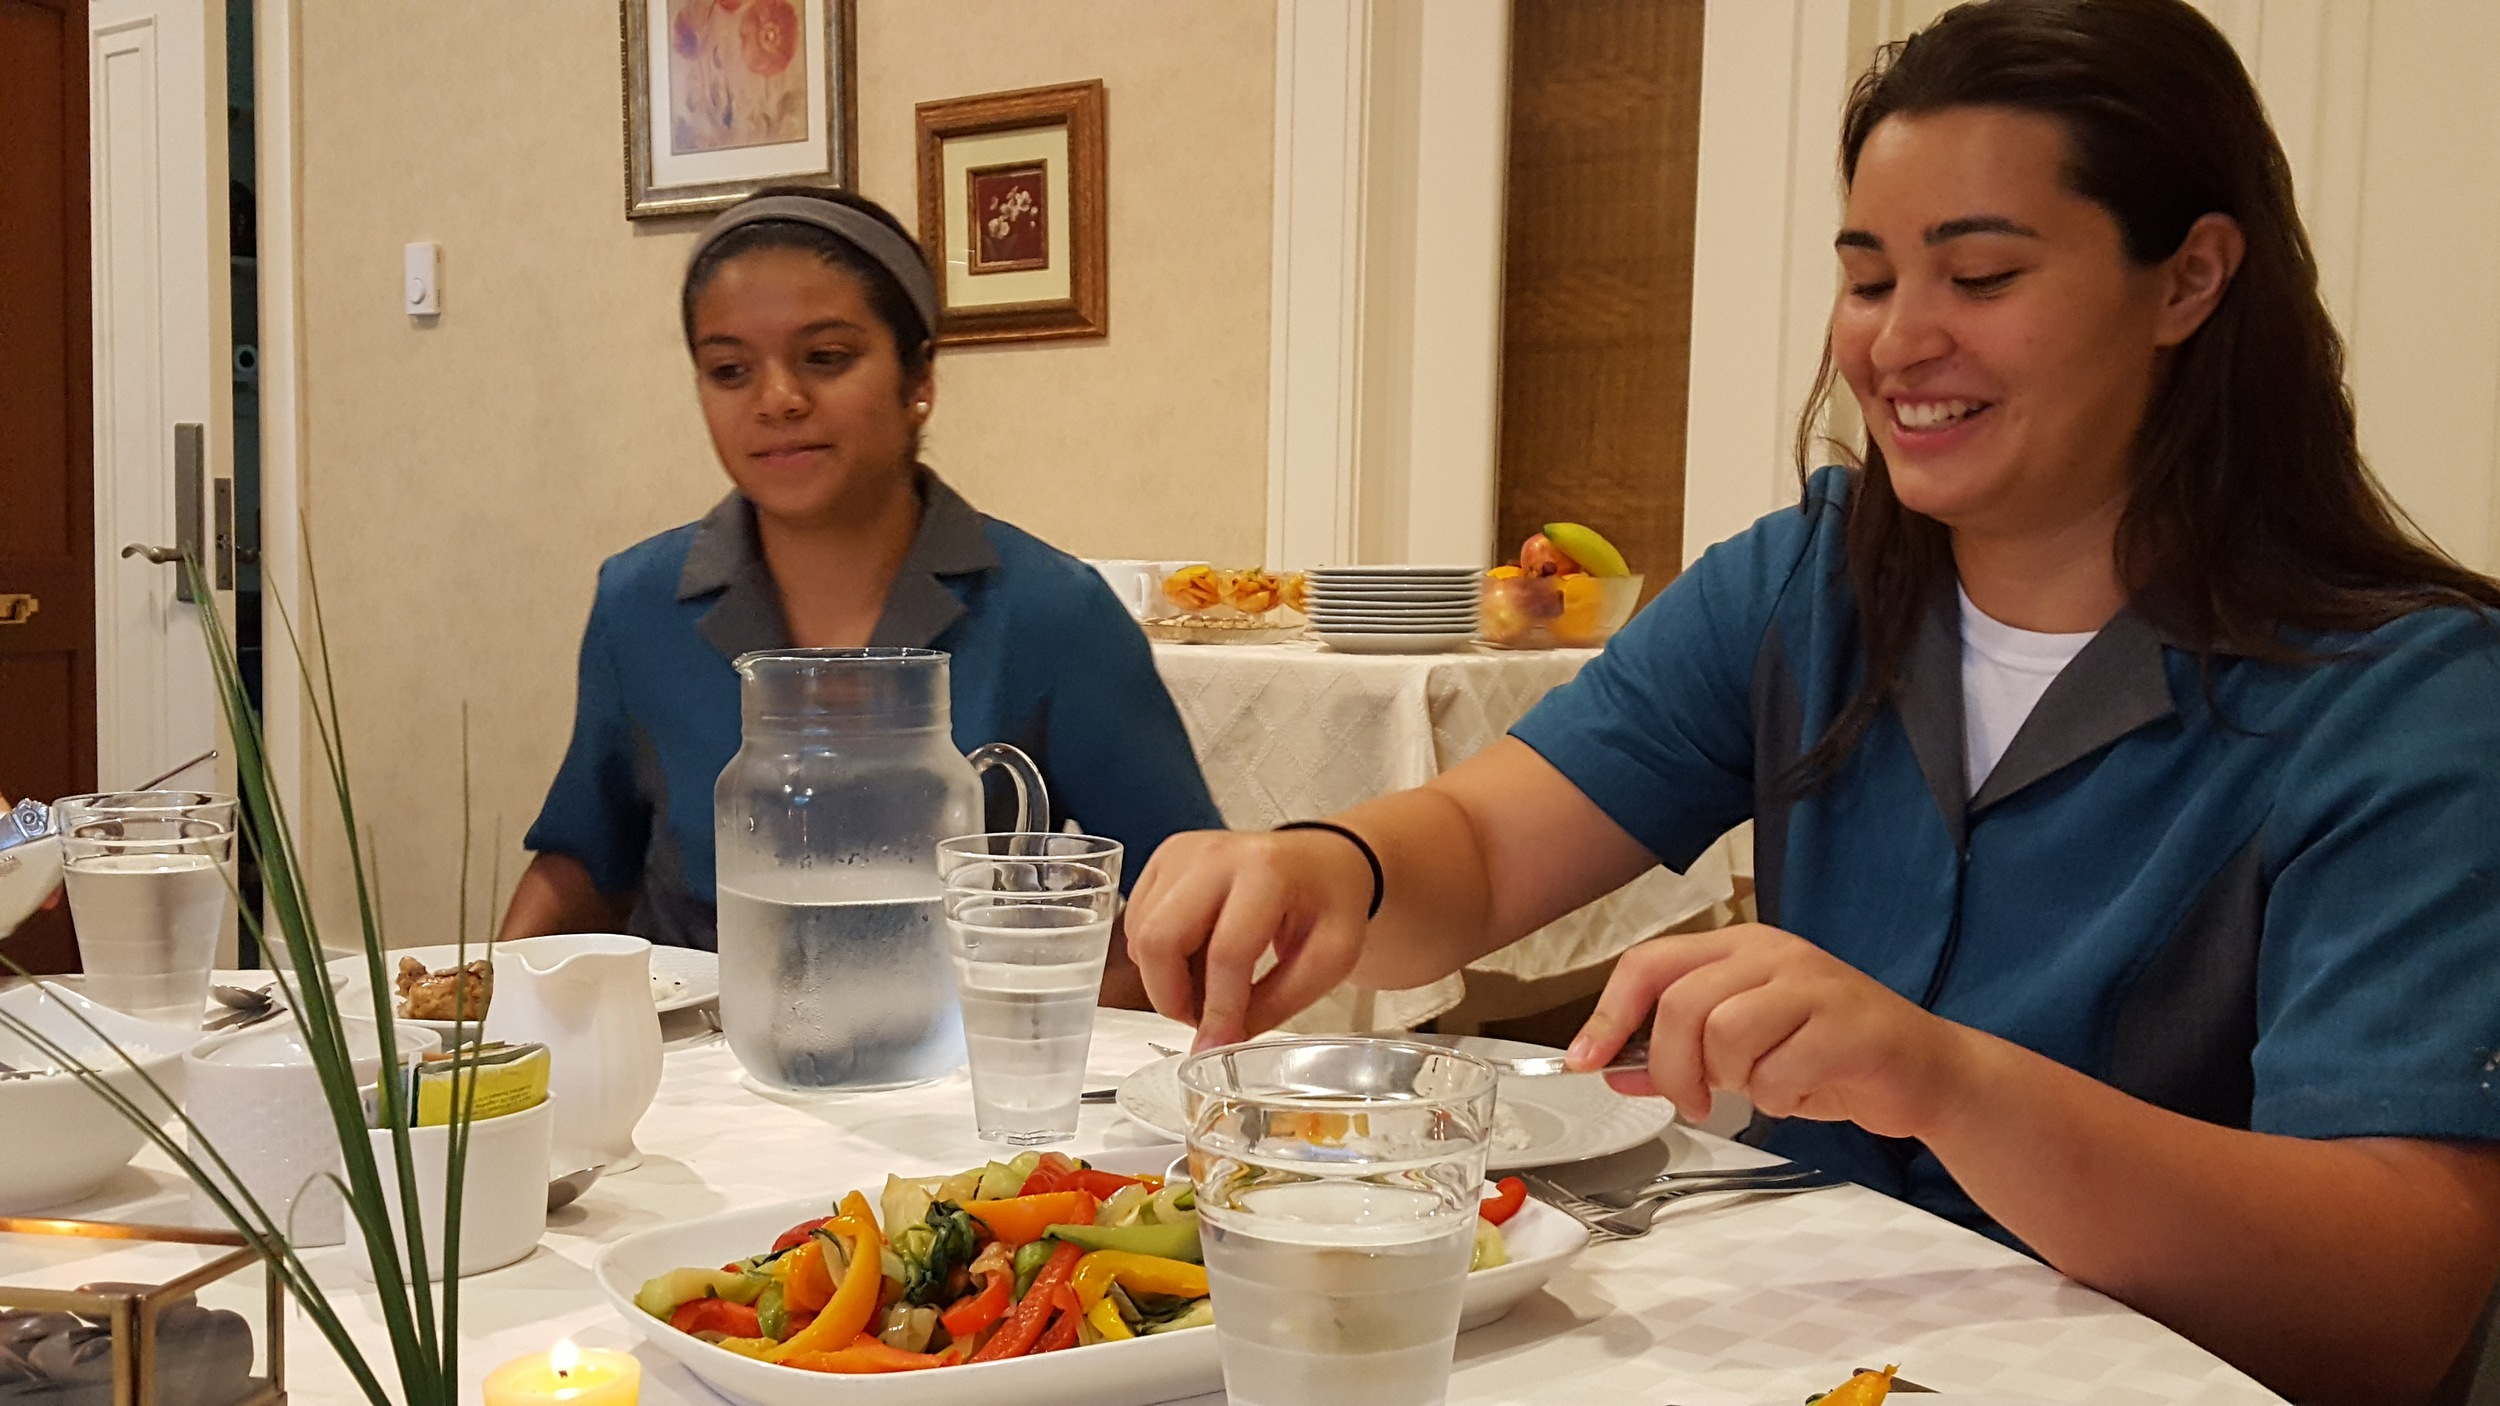 Bentleigh and Ashley enjoy the fruits of their labor!